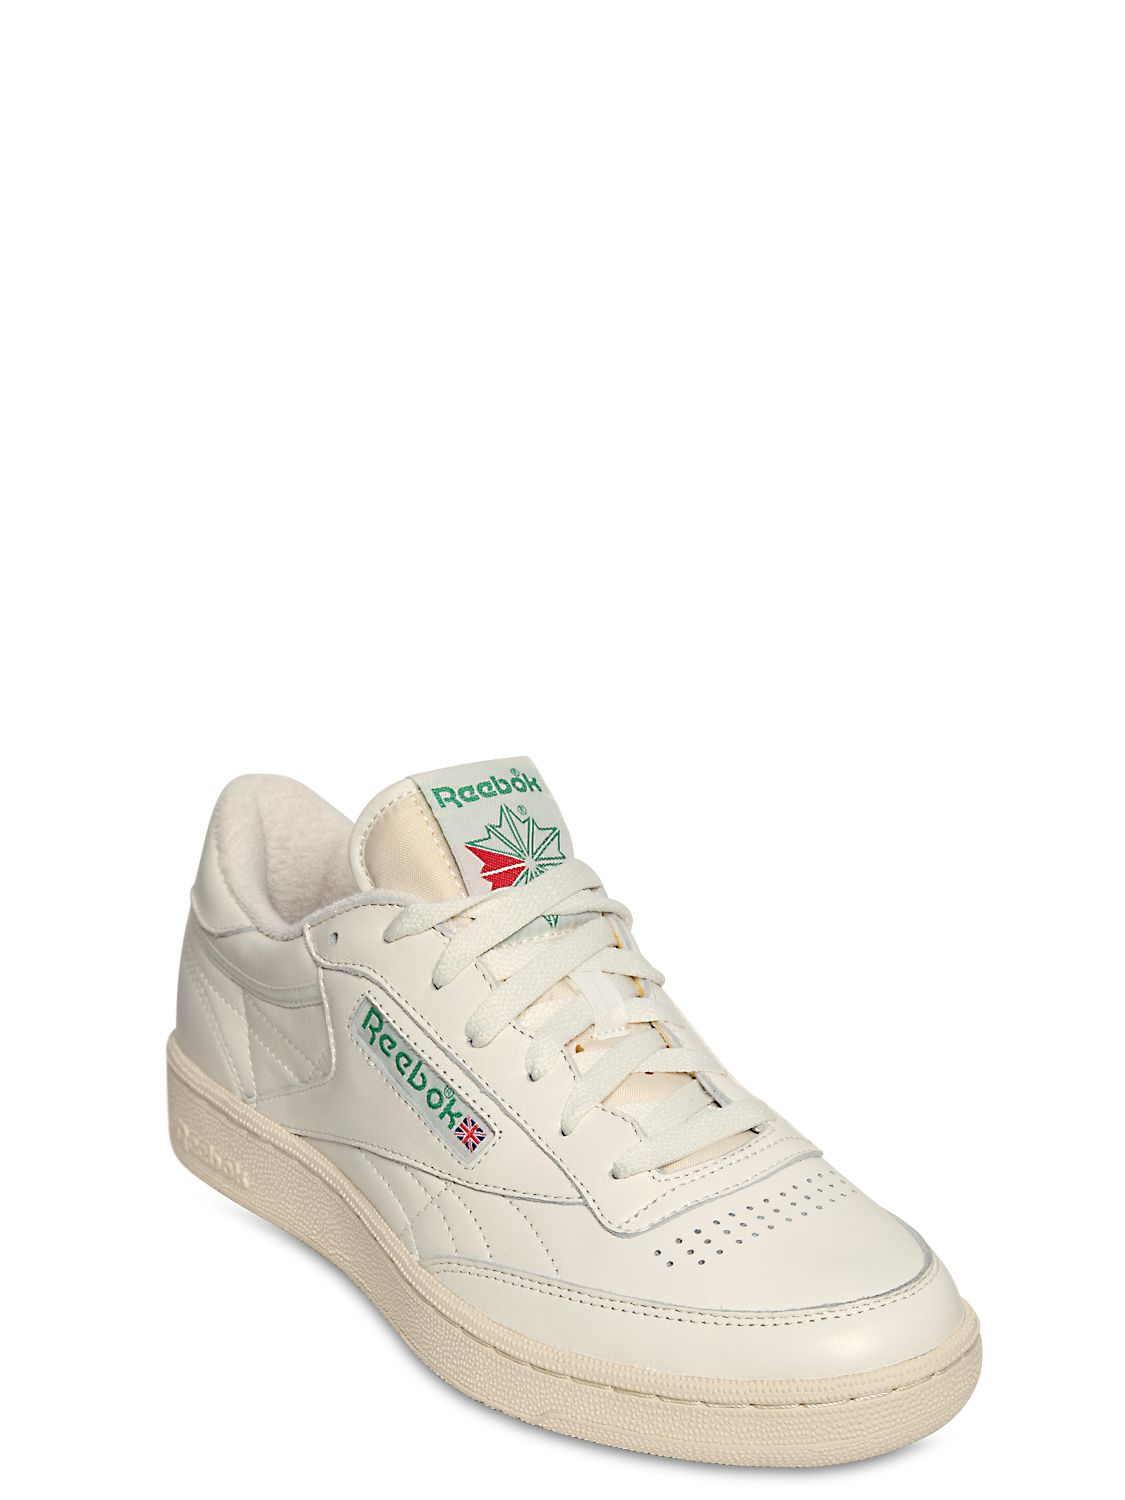 1a58cde14e4aba Reebok Club C 85 Vintage Leather Low-Top Sneakers in White for Men ...